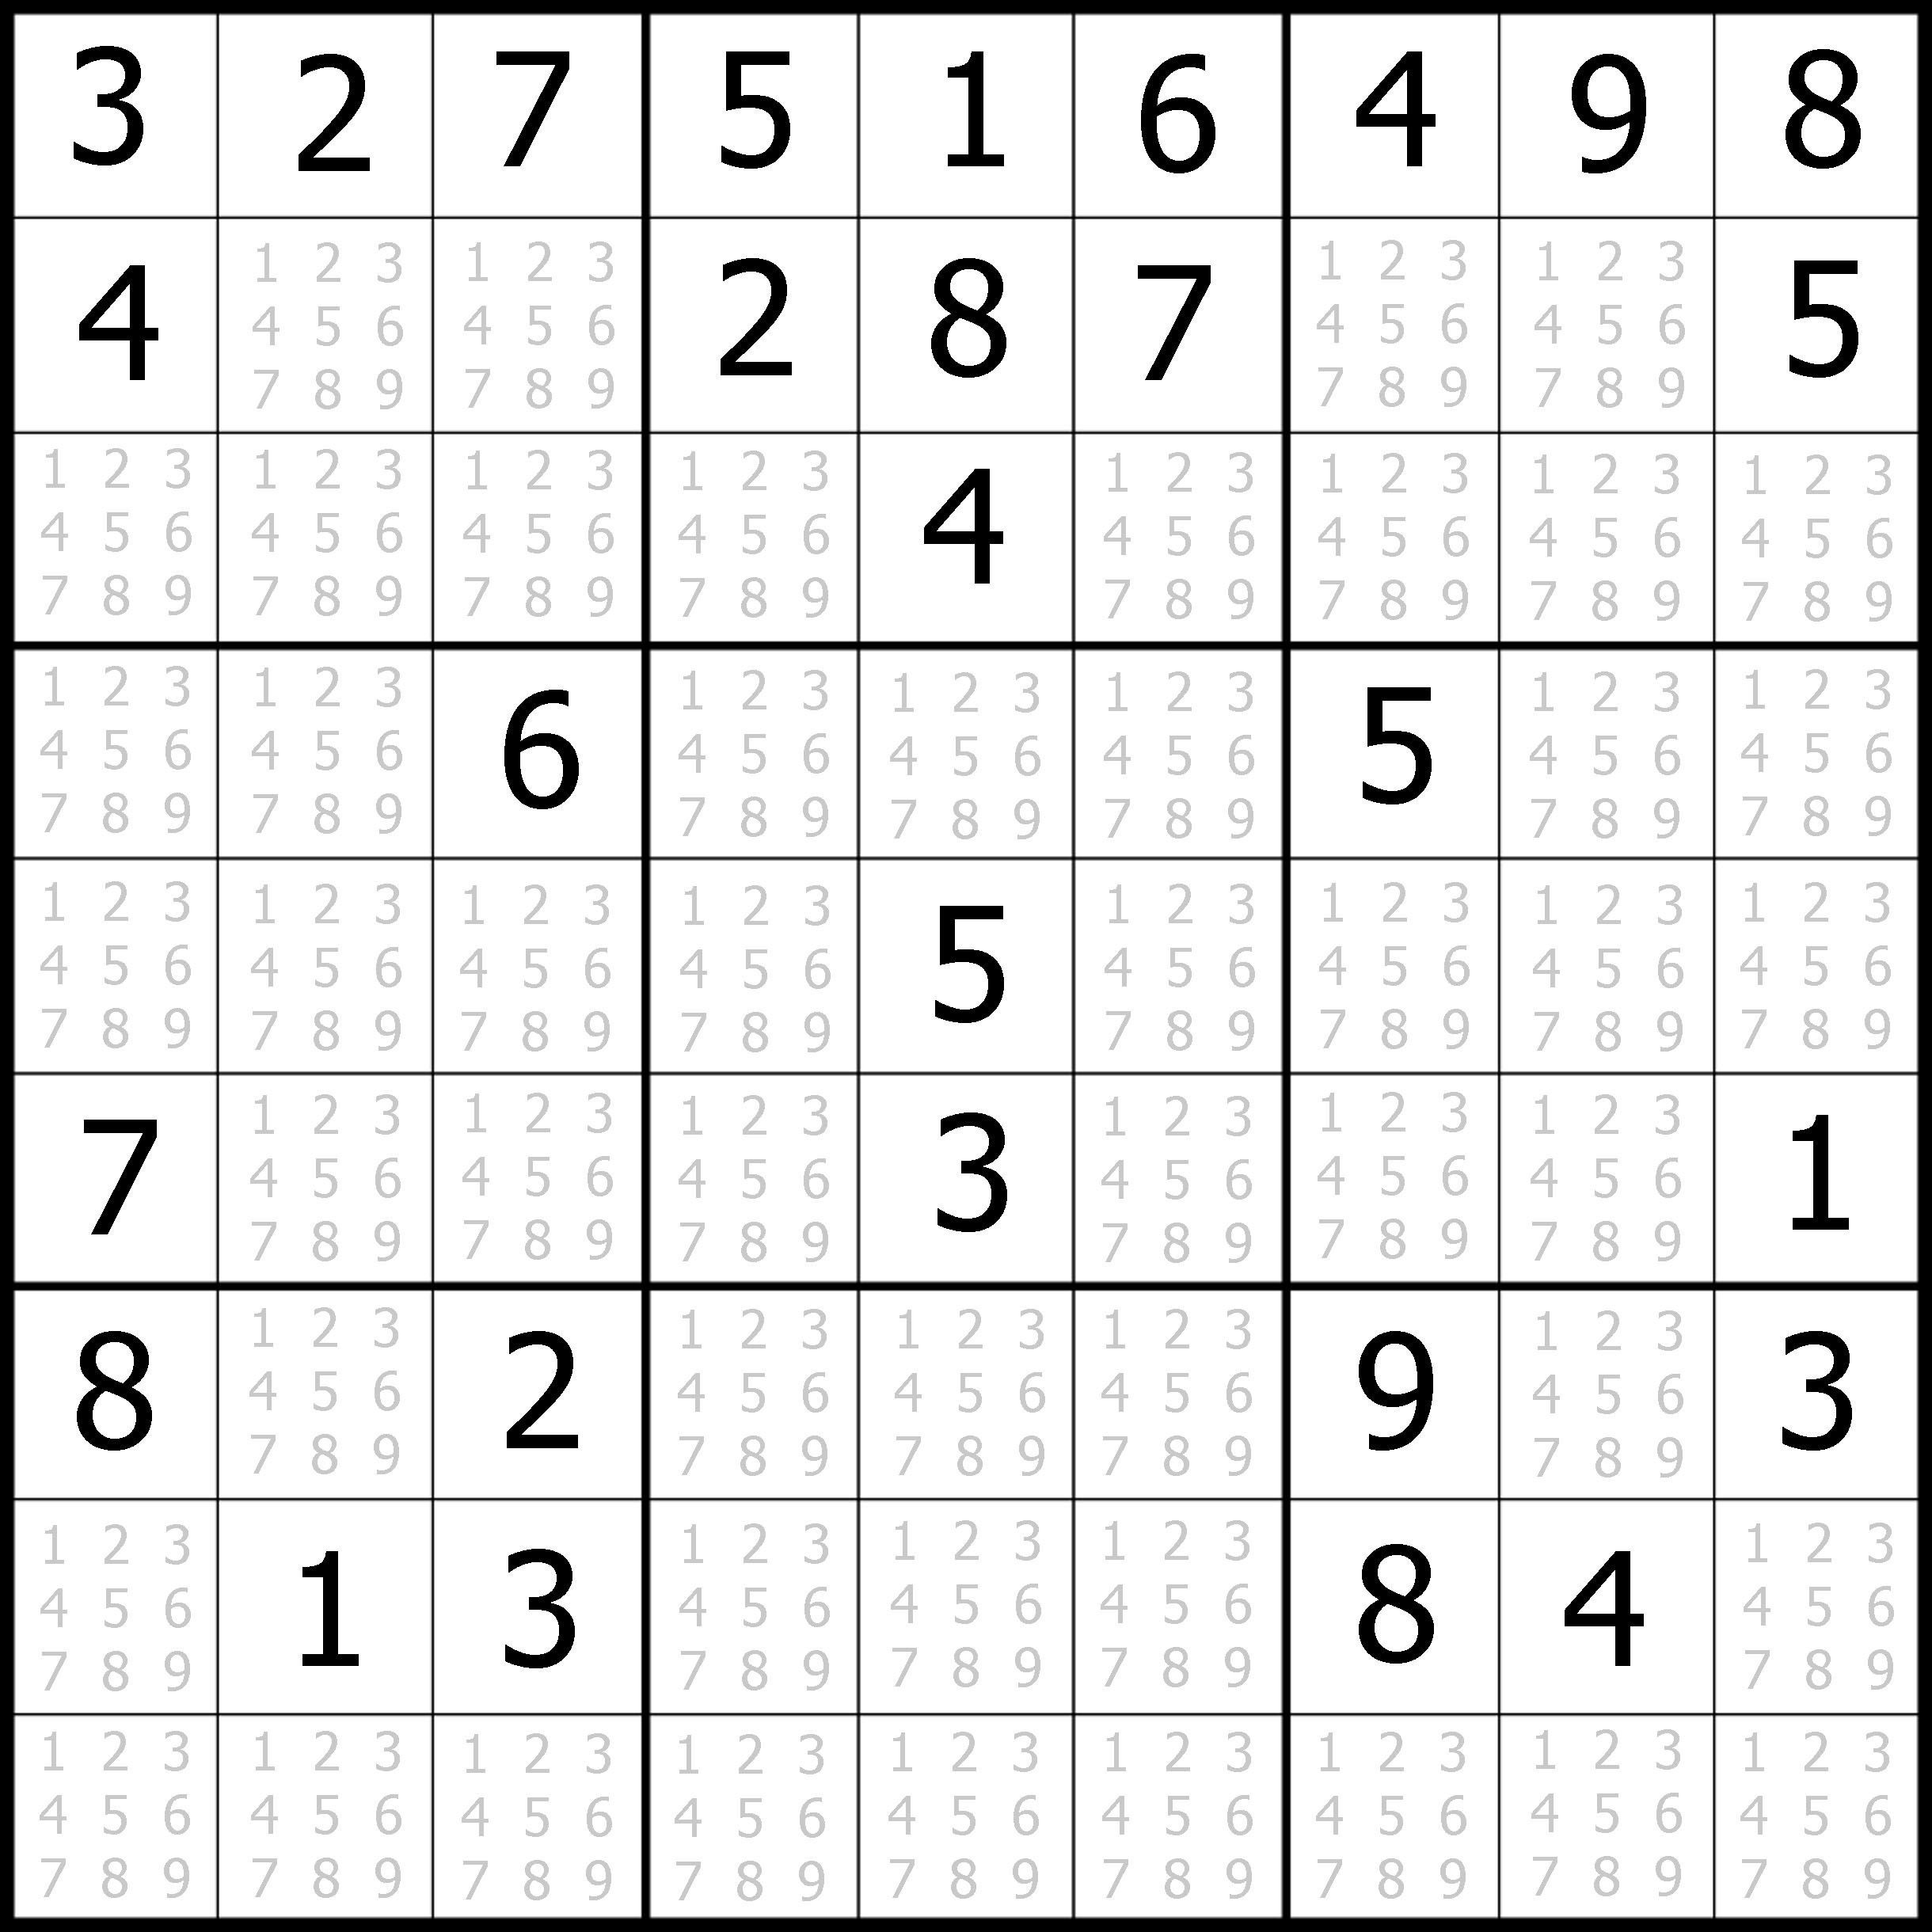 Sudoku Printable | Free, Medium, Printable Sudoku Puzzle #1 | My - Download Printable Sudoku Puzzles Free